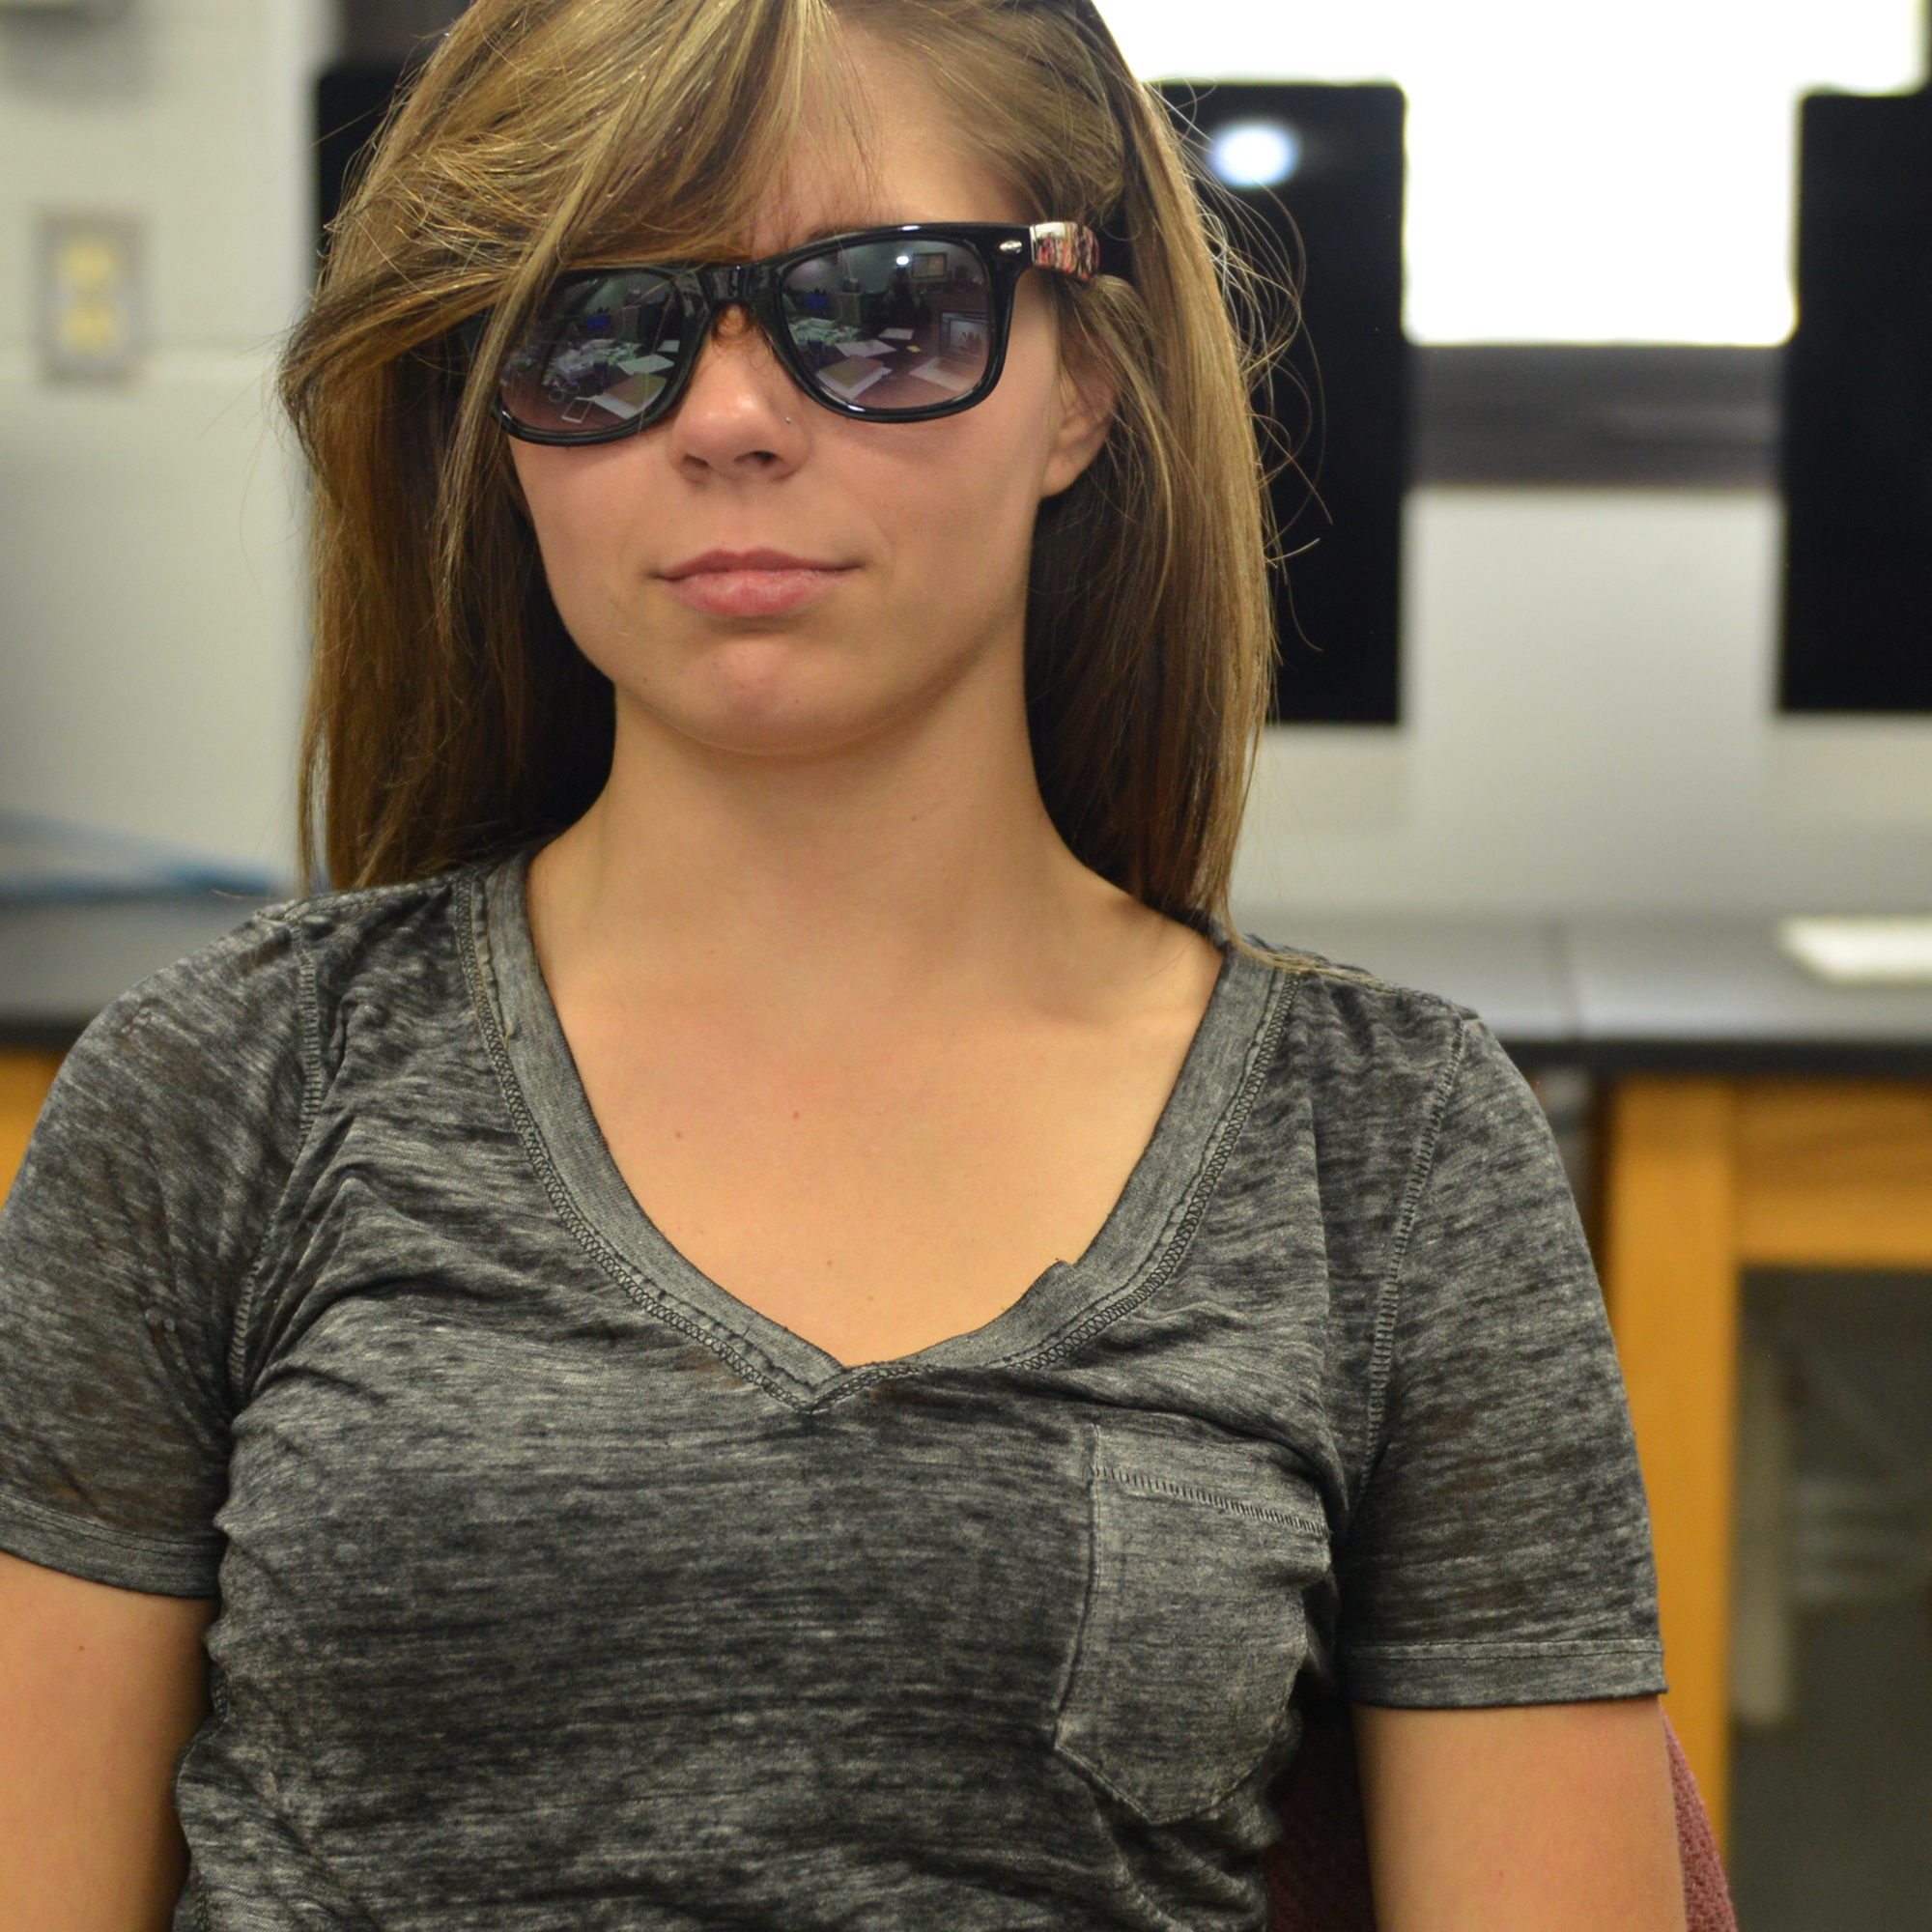 Student looking cool